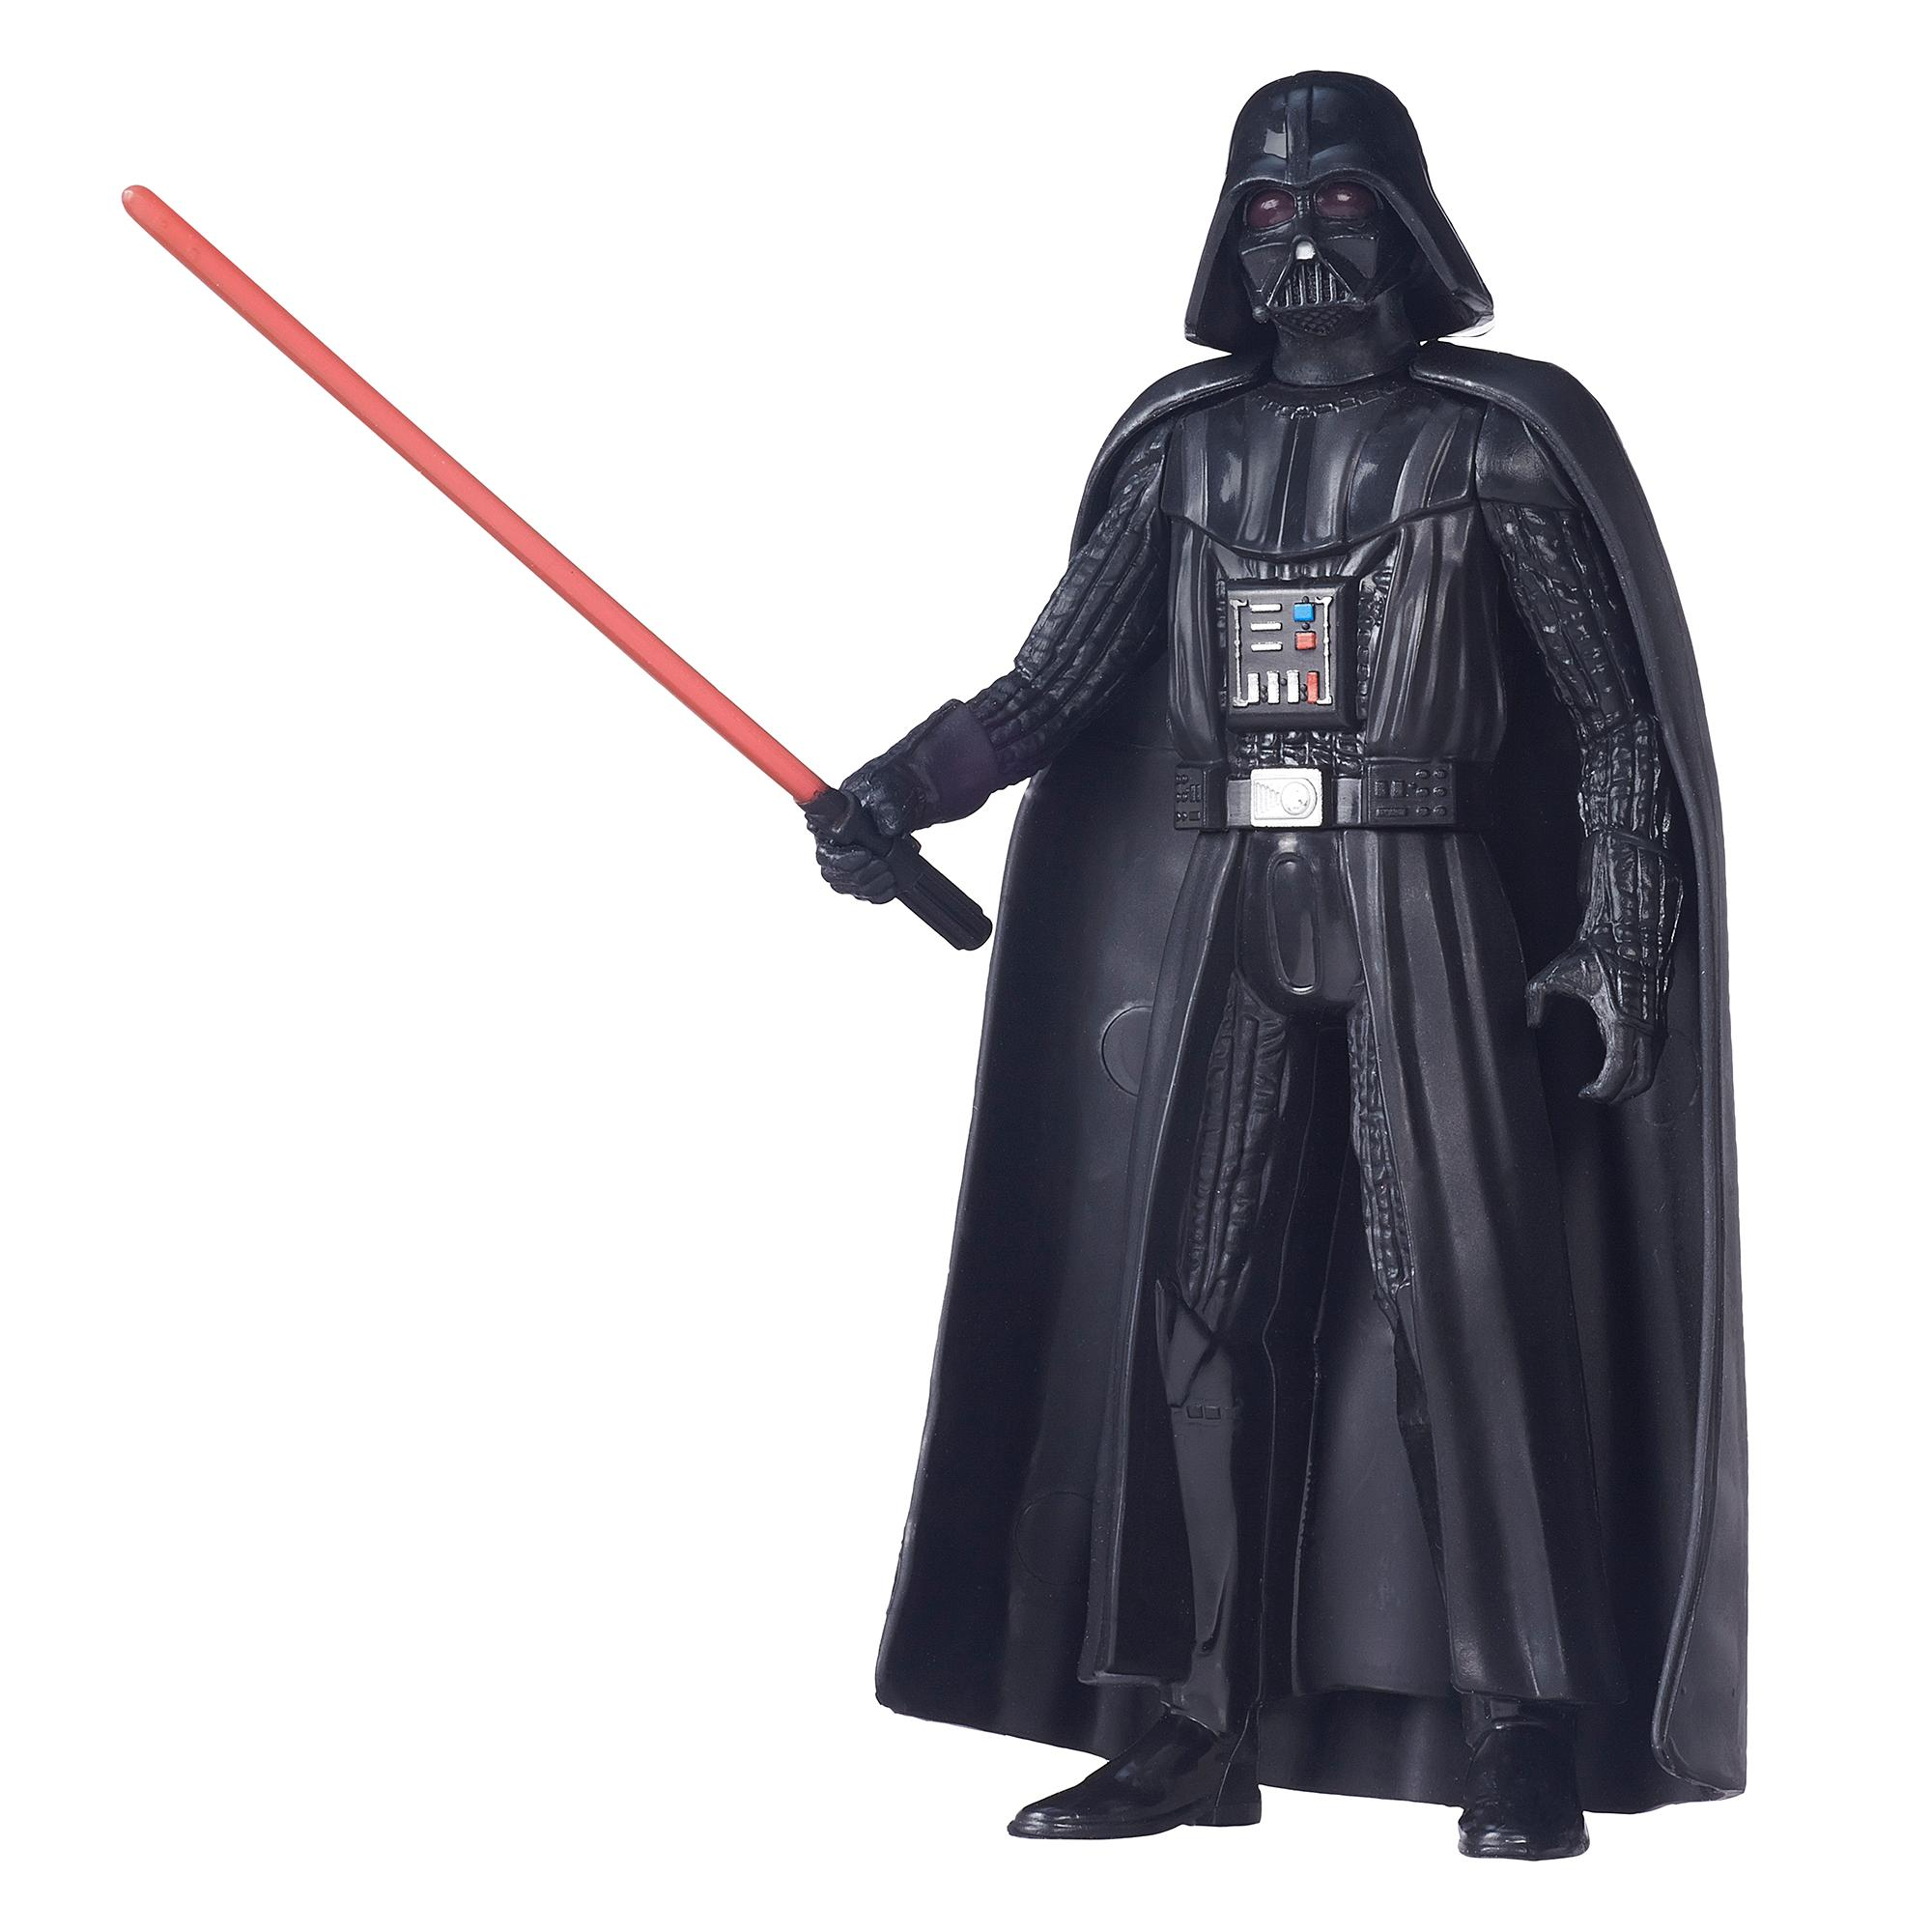 Star Wars: Return of the Jedi 6-inch Darth Vader